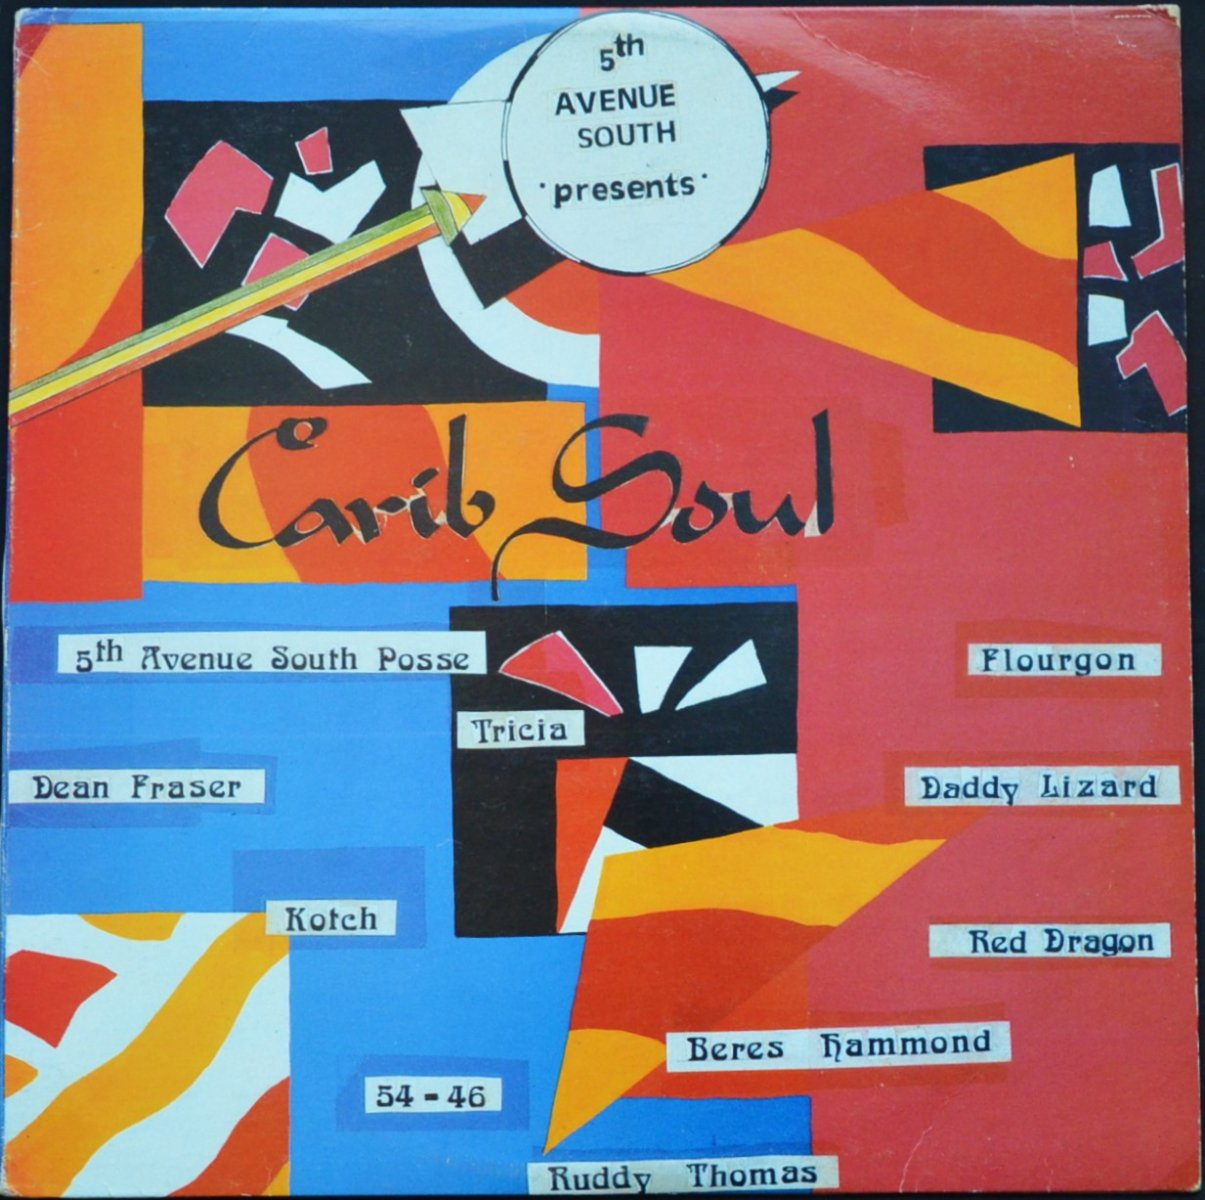 V.A.(54-46,BERES HAMMOND,RUDDY THOMAS...) / 5TH AVENUE SOUTH PRESENTS CARIB SOUL (1LP)